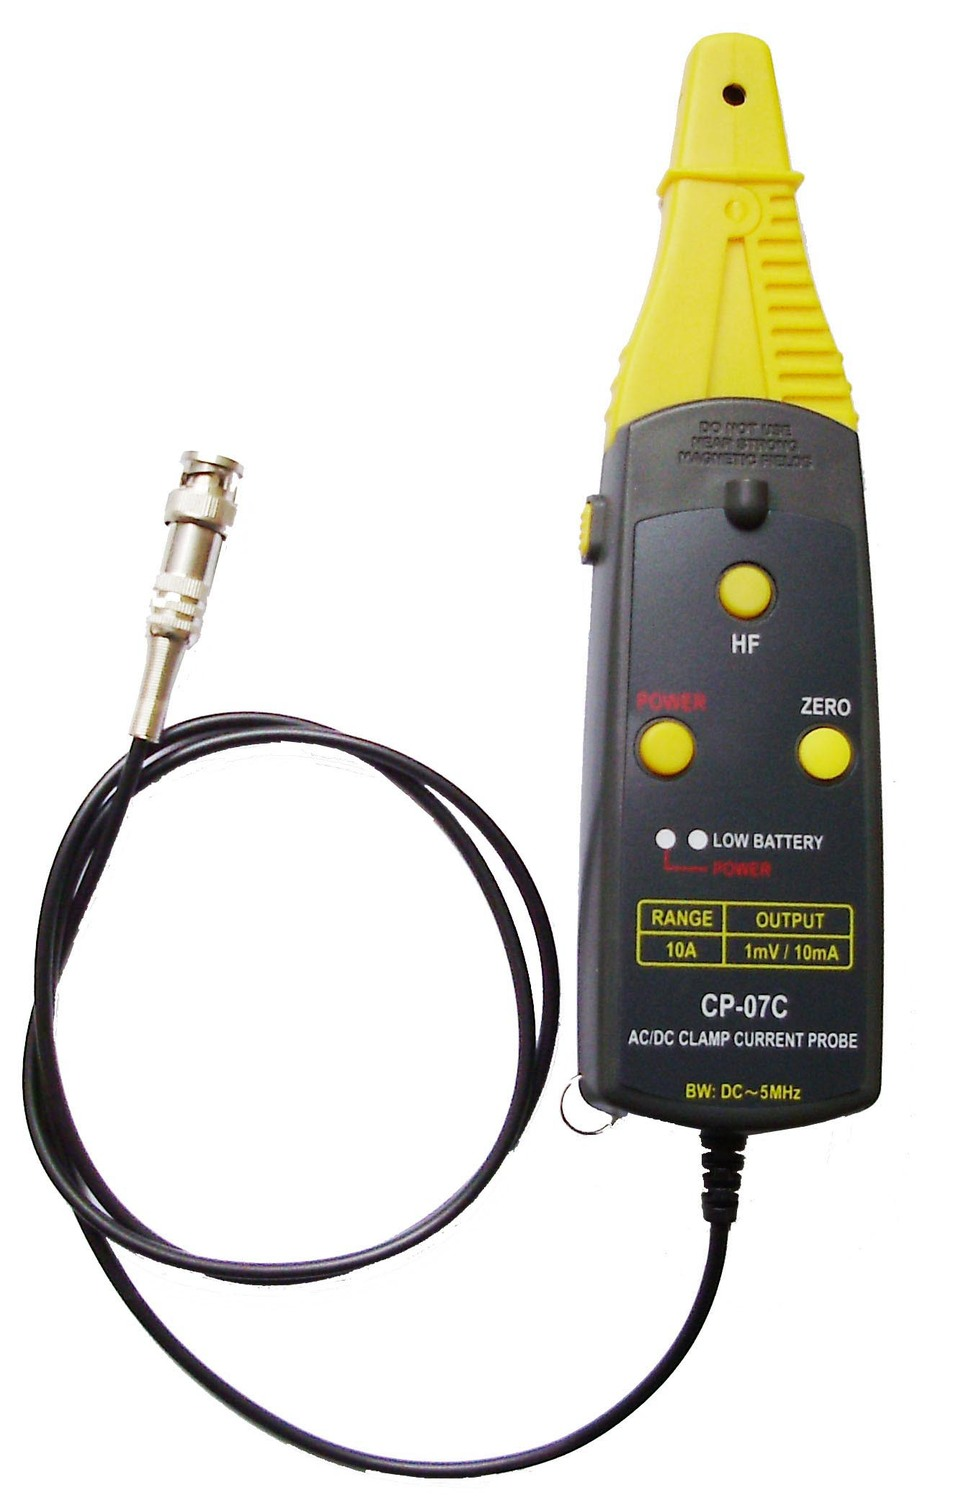 Ac Dc High Current Probe : Aliexpress buy cp c ac dc current clamp probe from